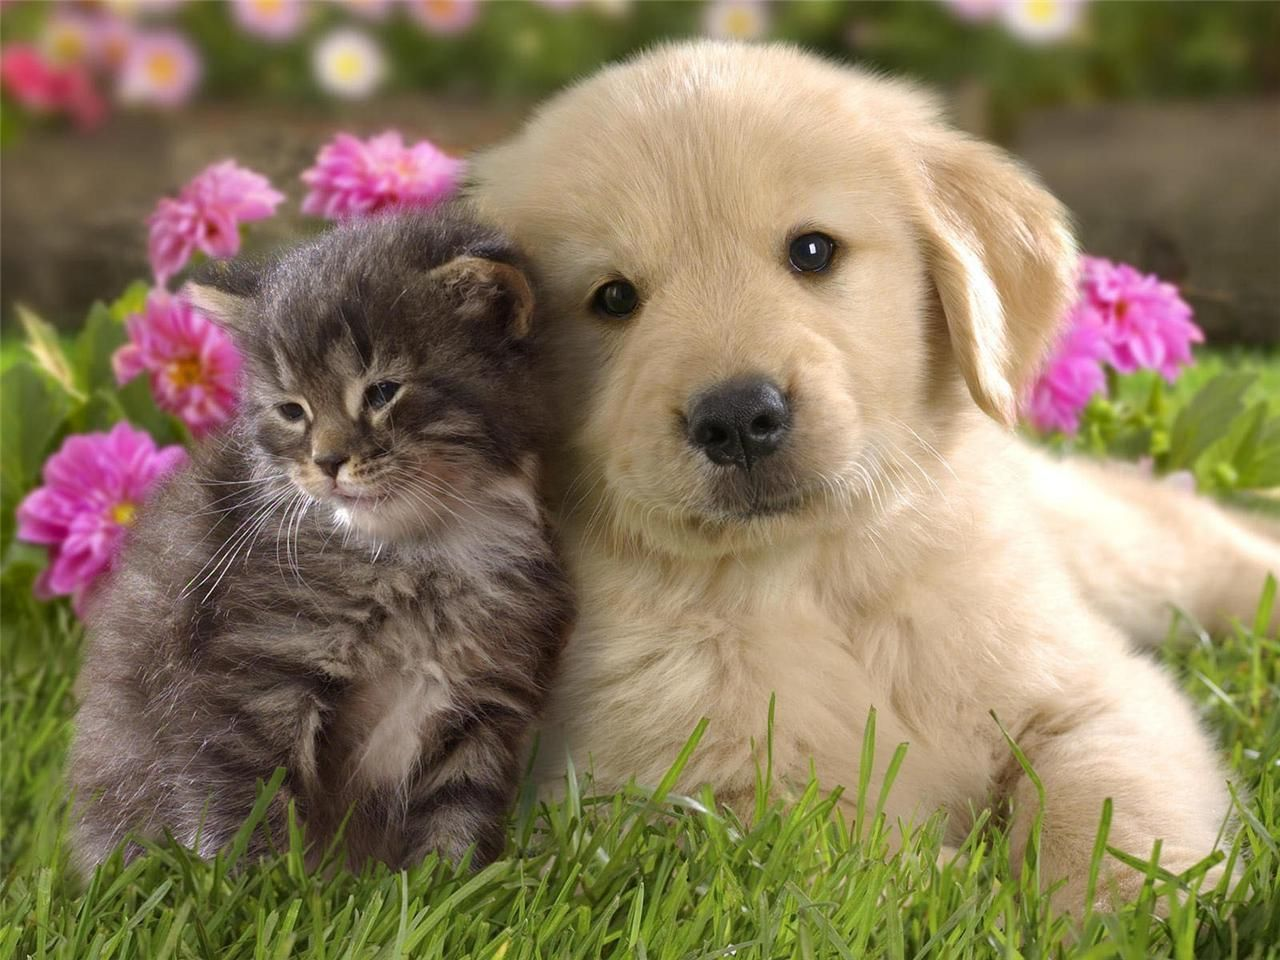 1280x960 - Cute Puppy and Kitten 5